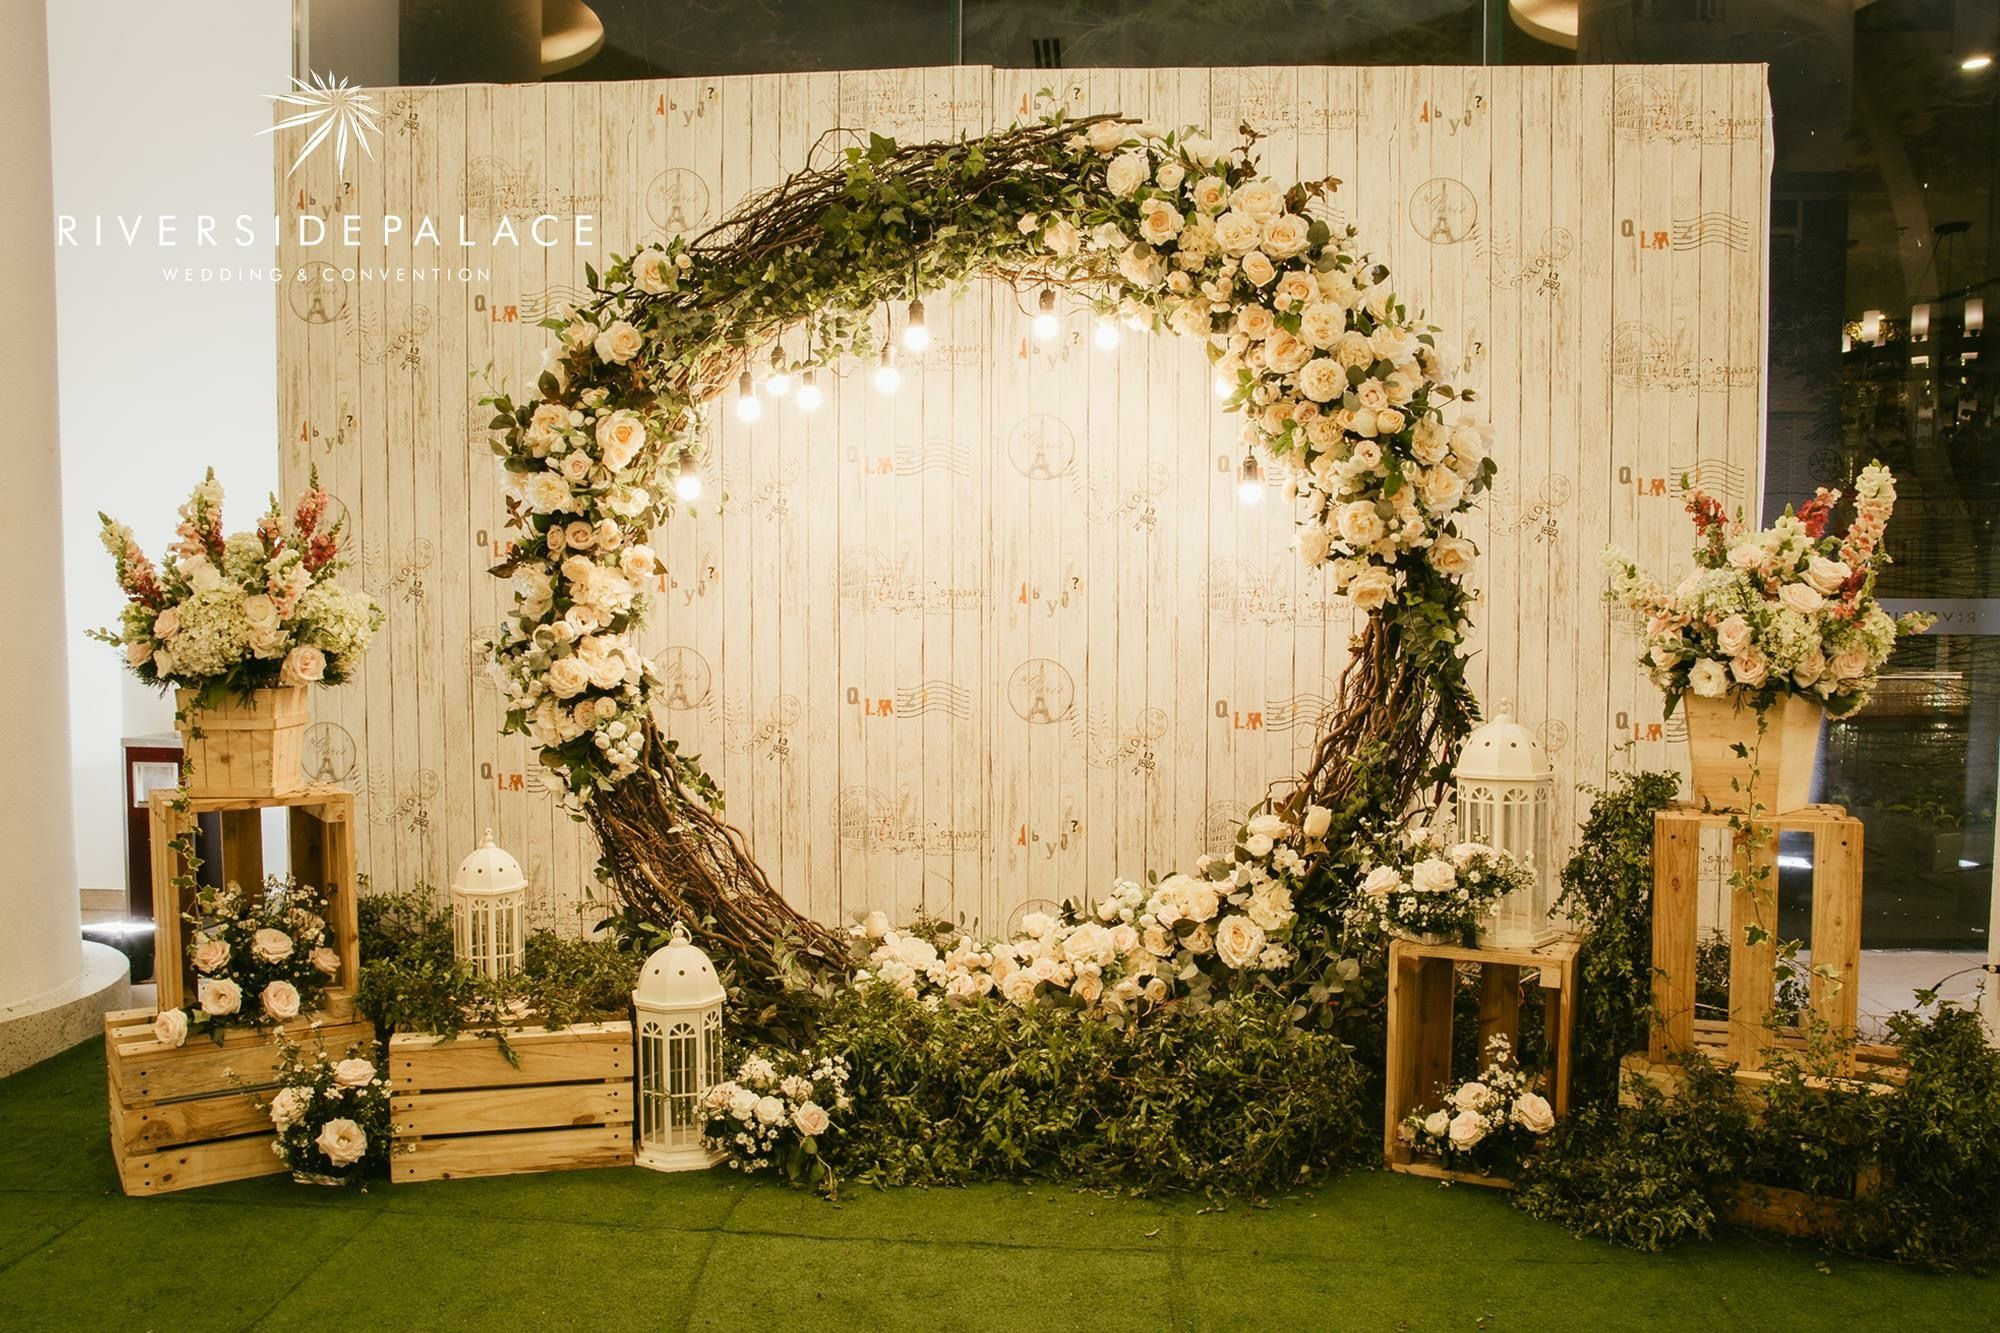 80th Birthday In 2020 Wedding Backdrop Design Wedding Backdrop Decorations Rustic Wedding Backdrops